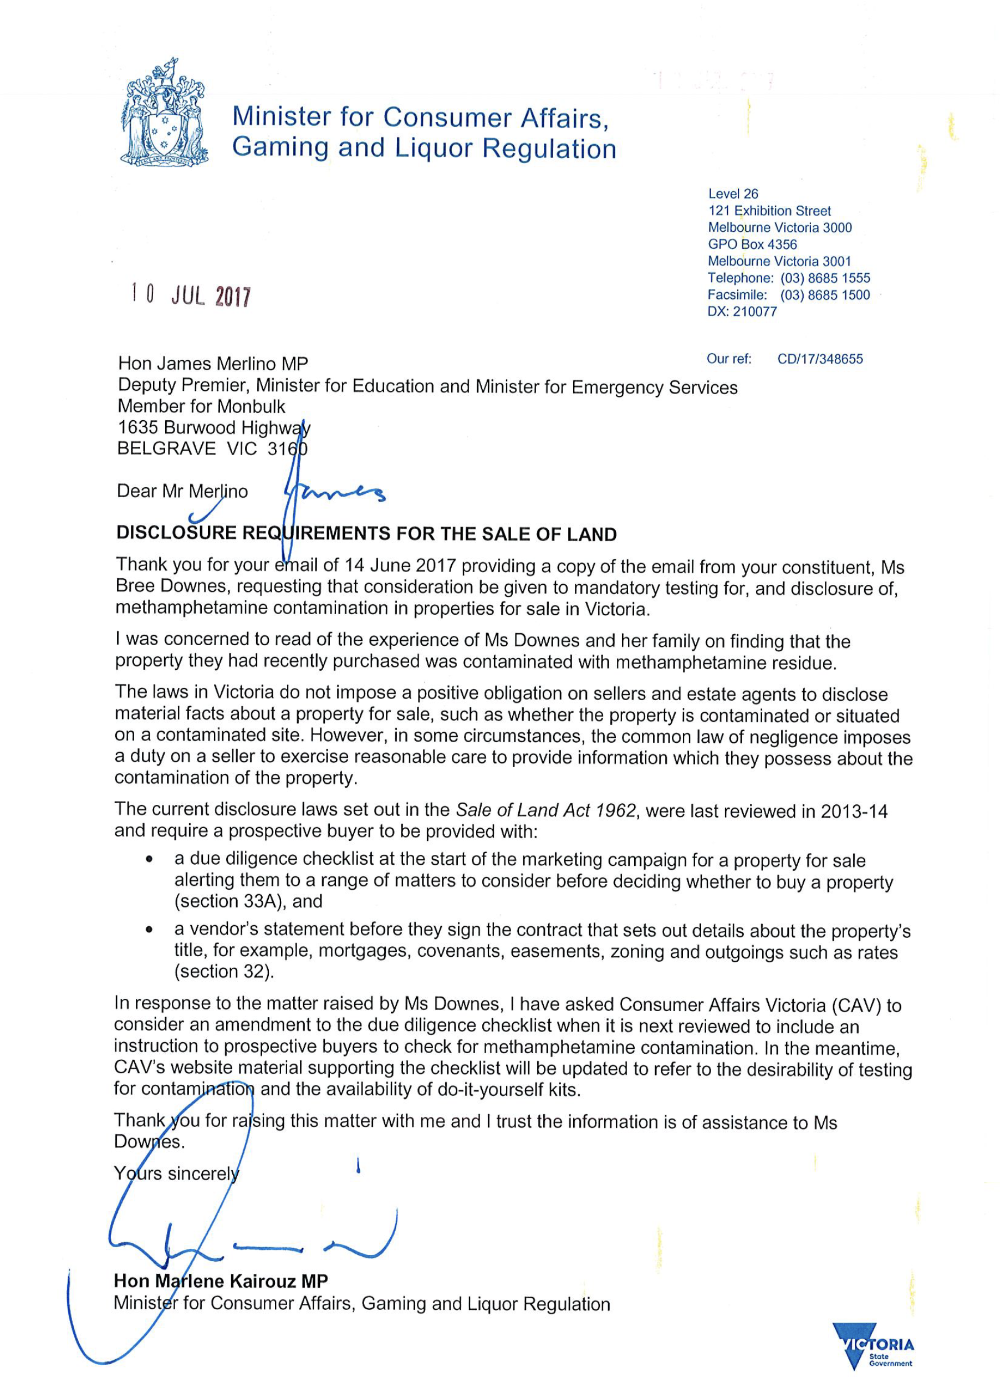 Fundraiser by meg landmann family home remediation heres a hopeful letter from the minister for consumer affairs that james merlino our local member has passed on solutioingenieria Gallery